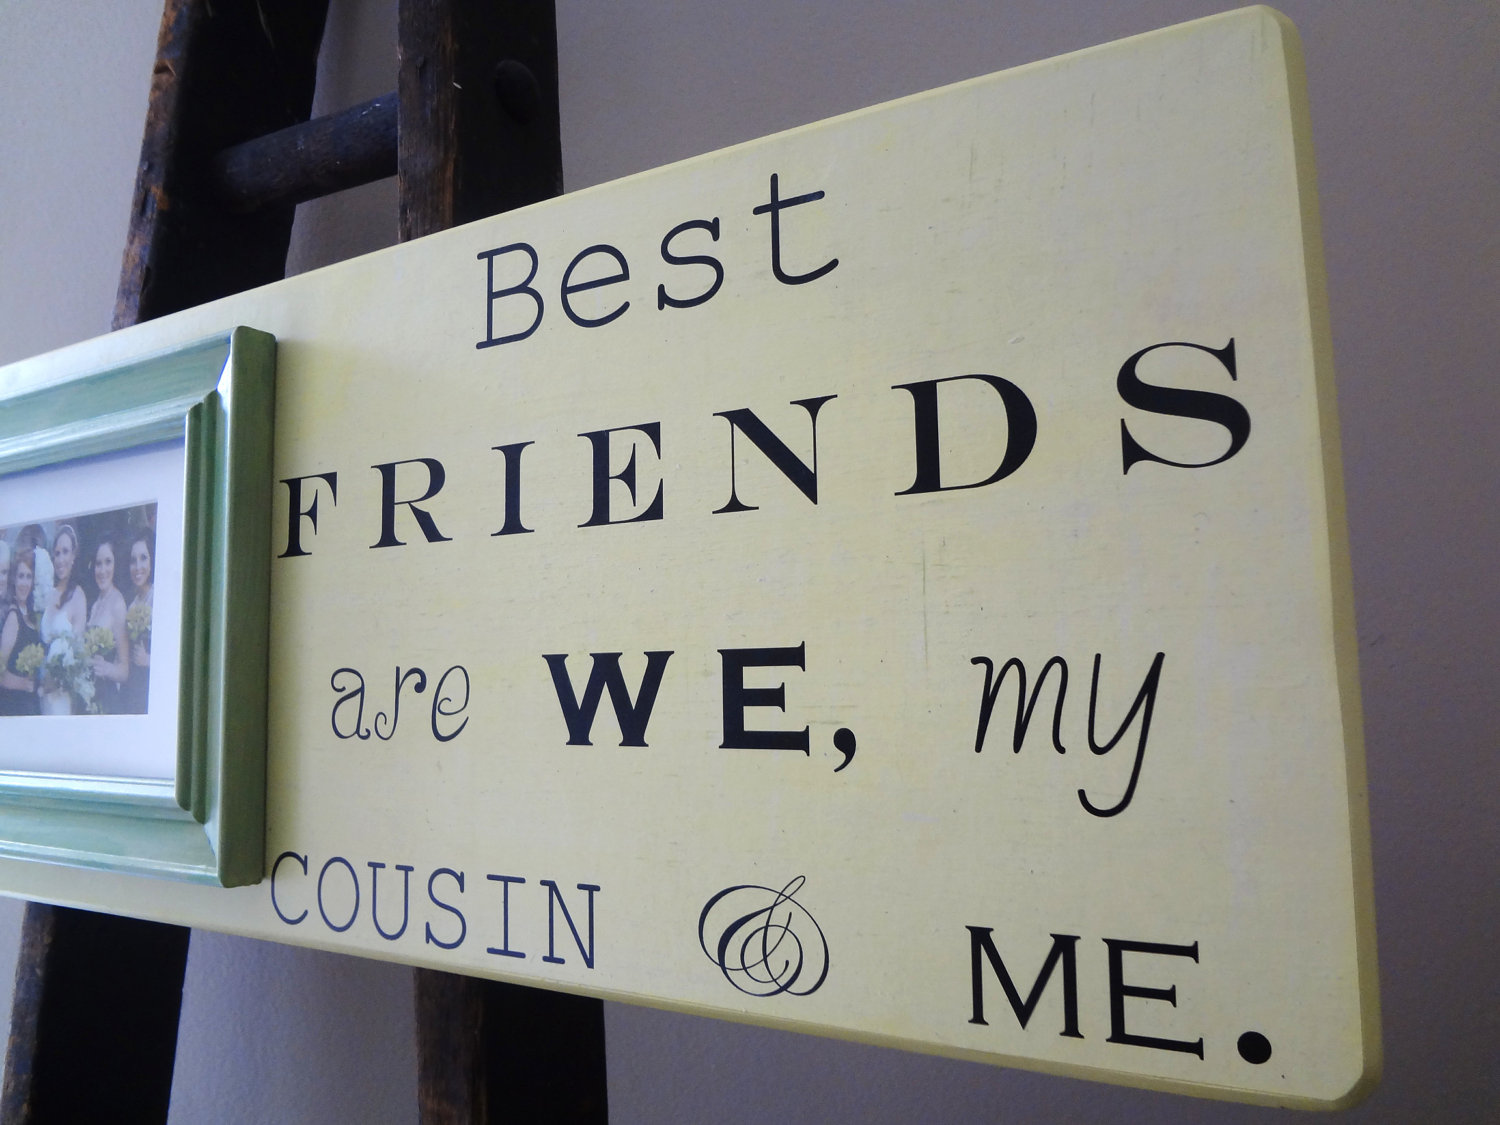 I Love You Quotes: Cousin Quotes For Girls. QuotesGram